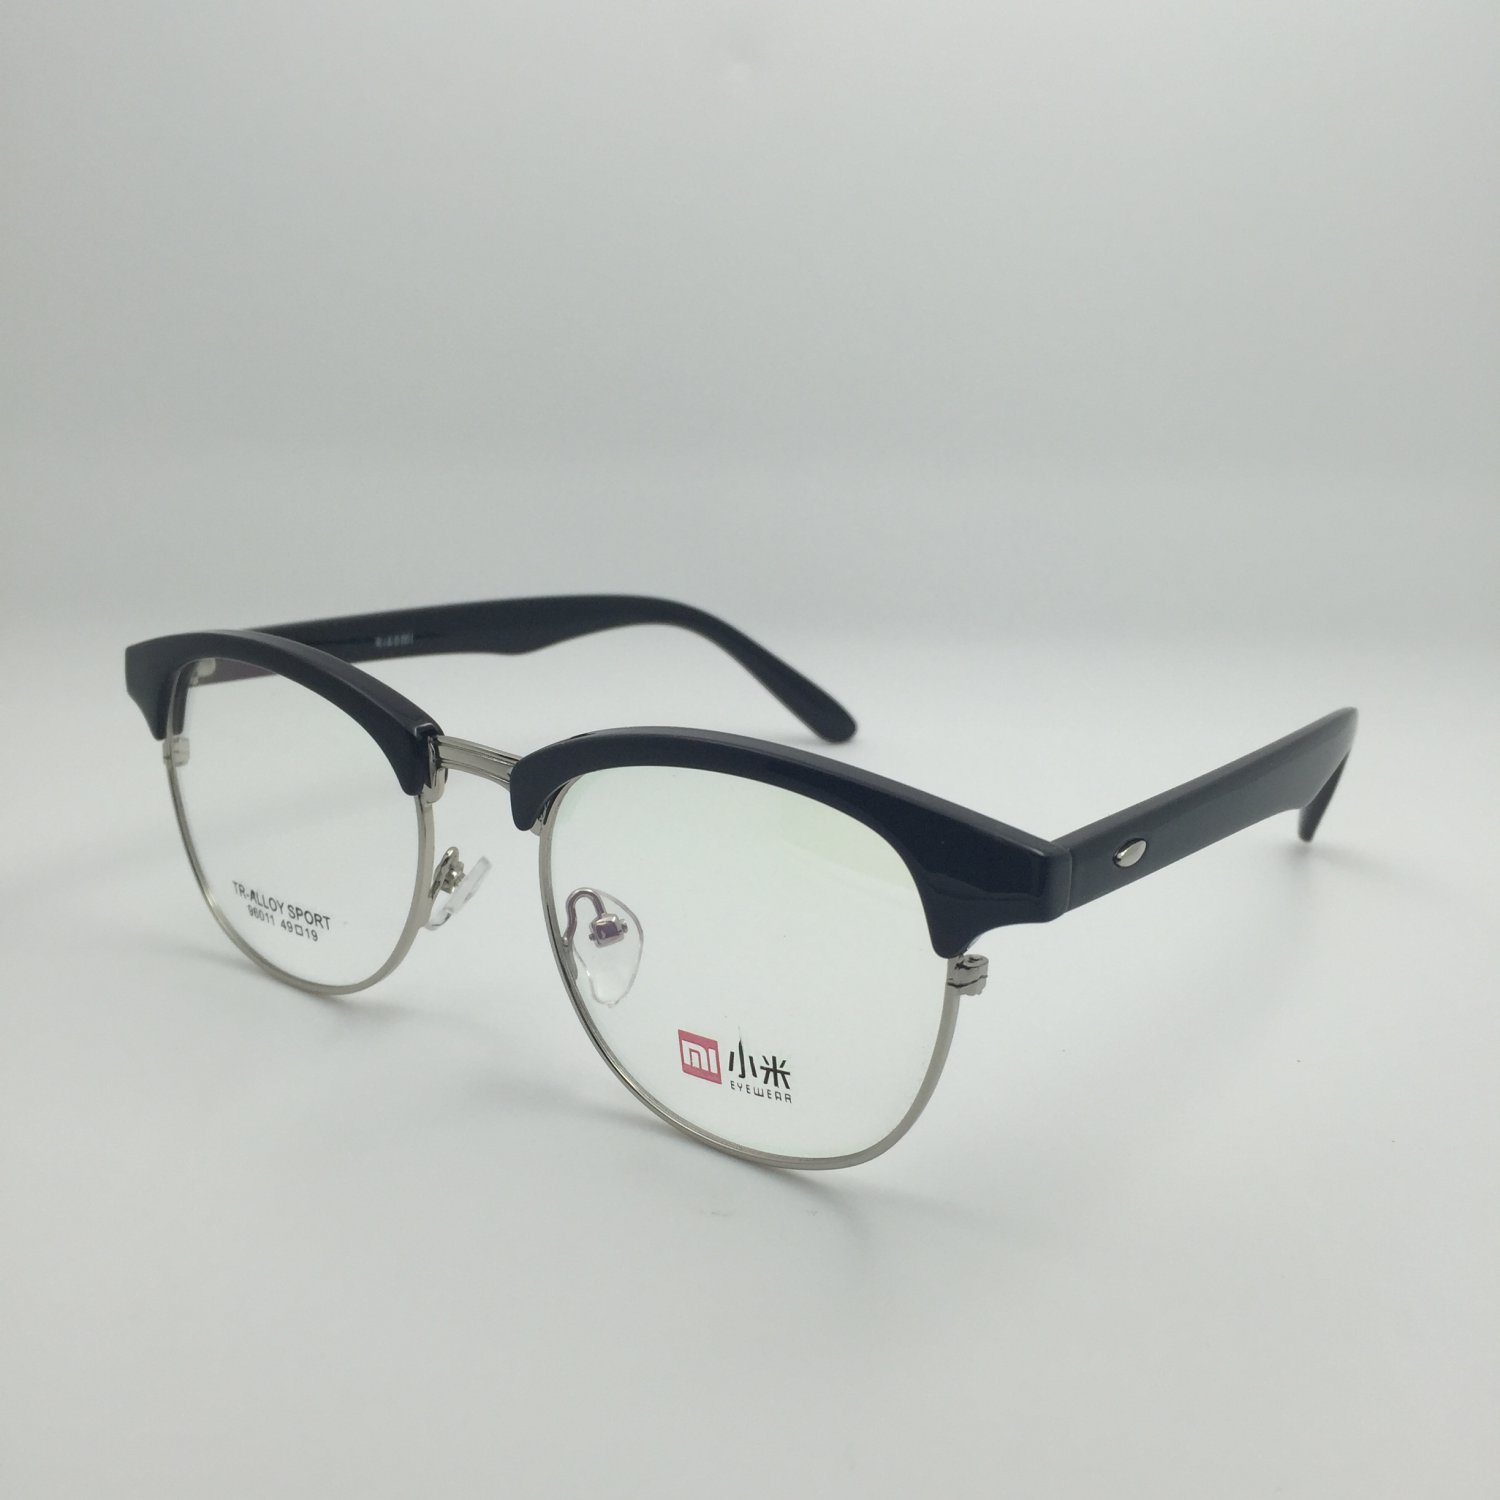 Gents / Ladies Prescription Glasses Spectacles frames xm96011 - Black